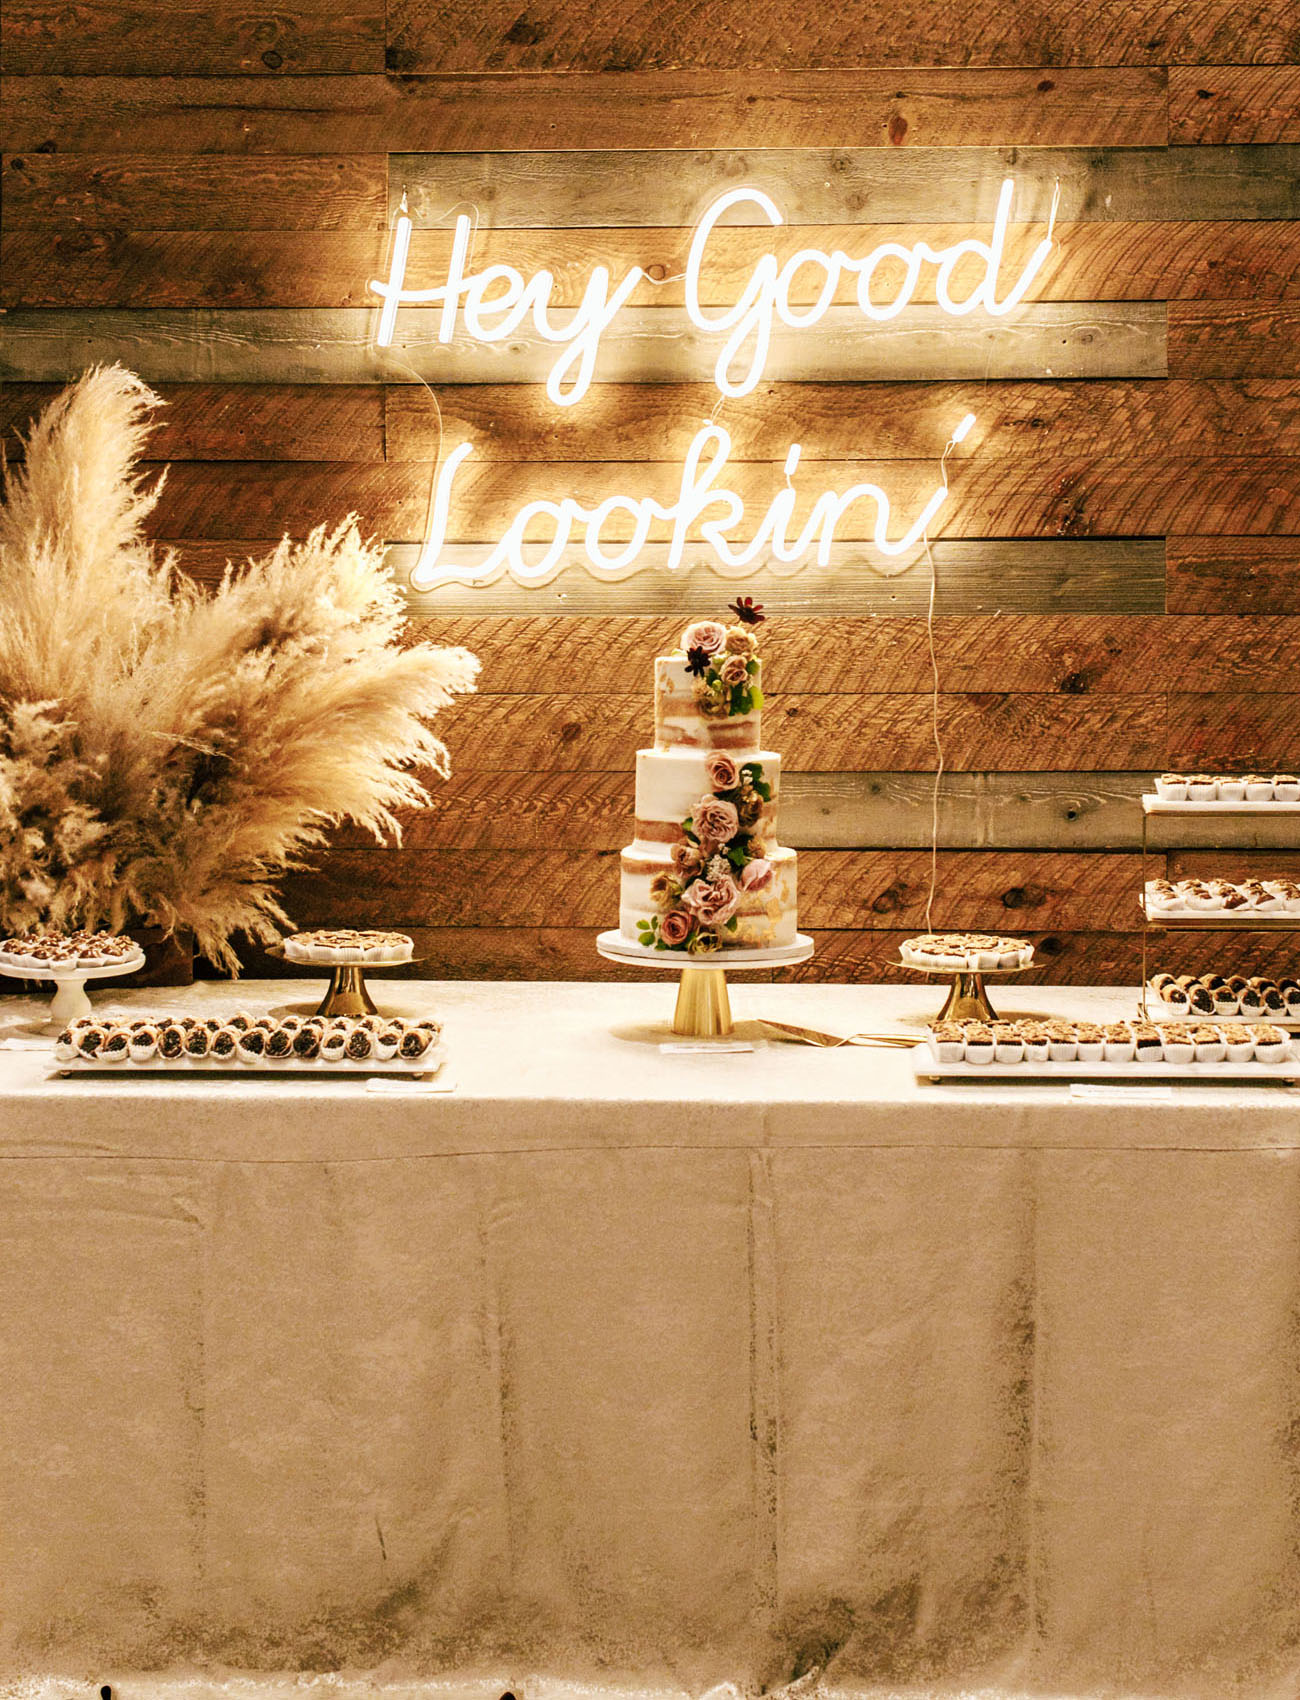 A stylish wedding dessert table with pampas grass, lots of sweets and a naked wedding cake with blush blooms